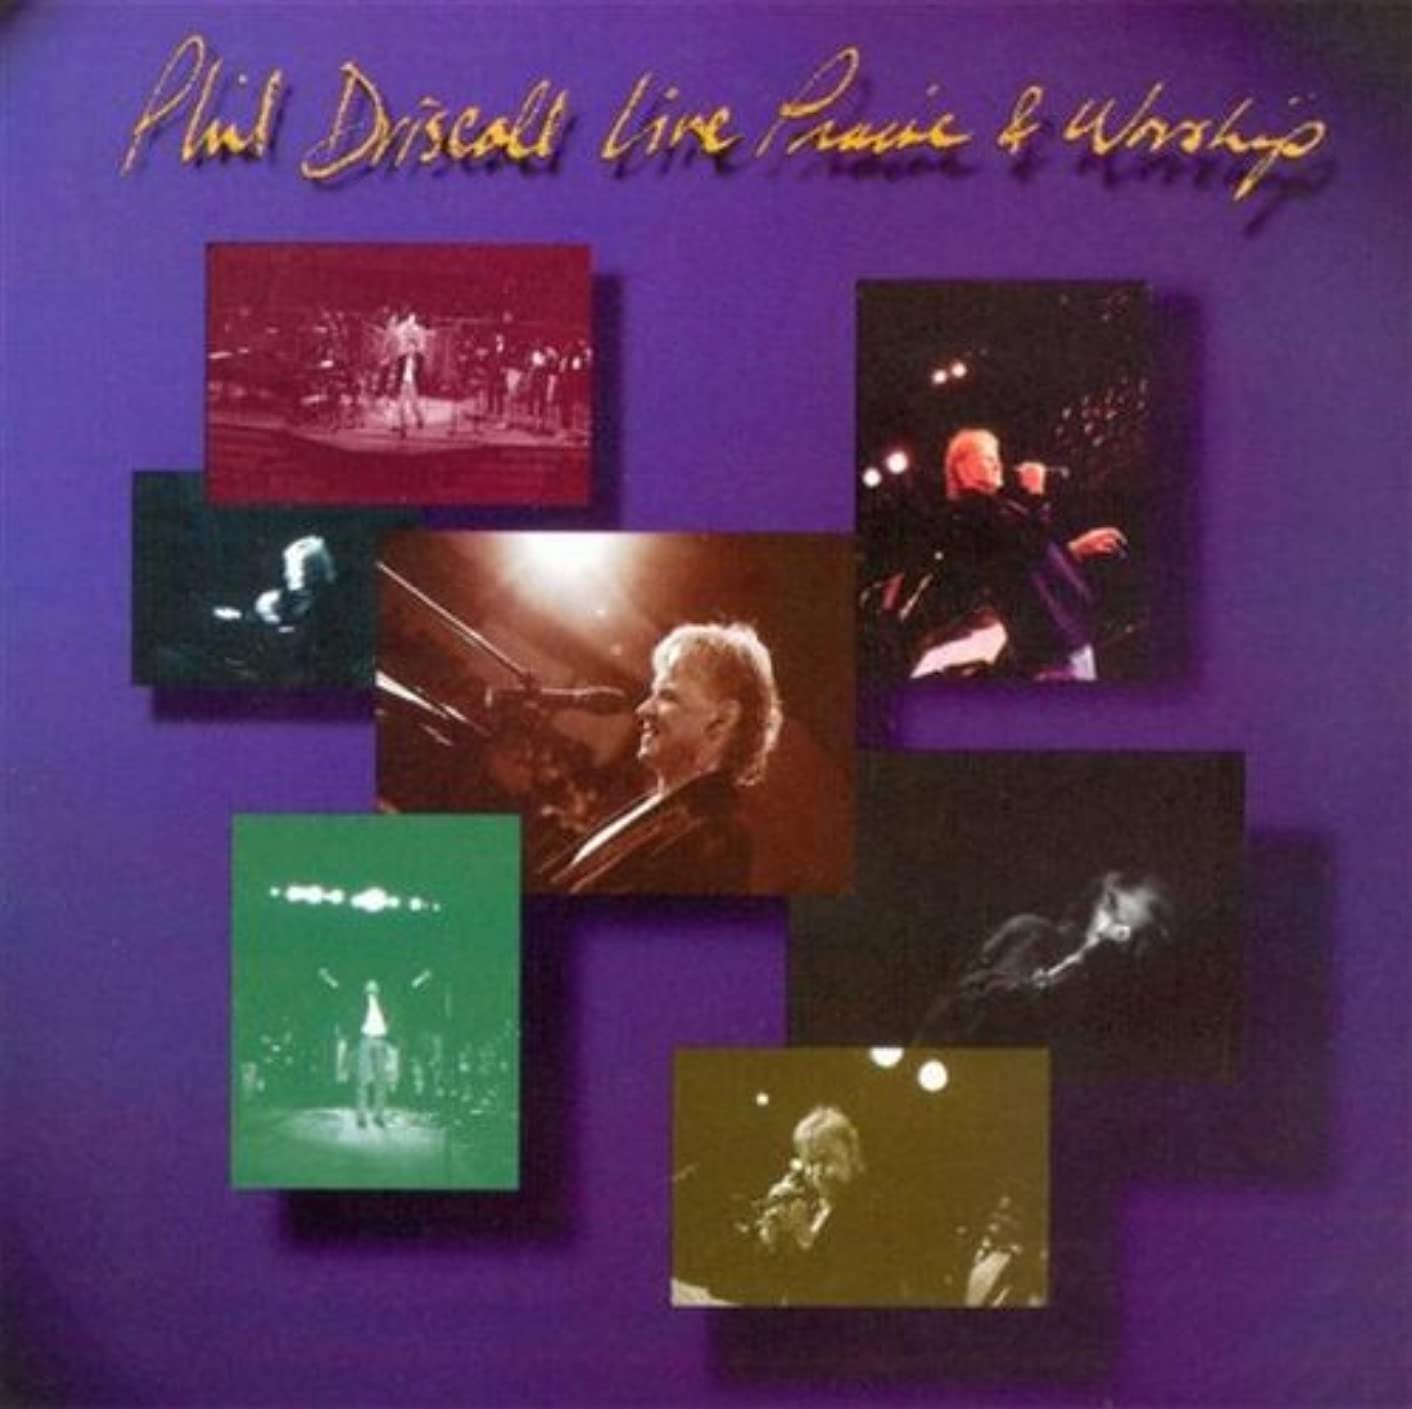 Phil Driscoll Live: Praise and Worship